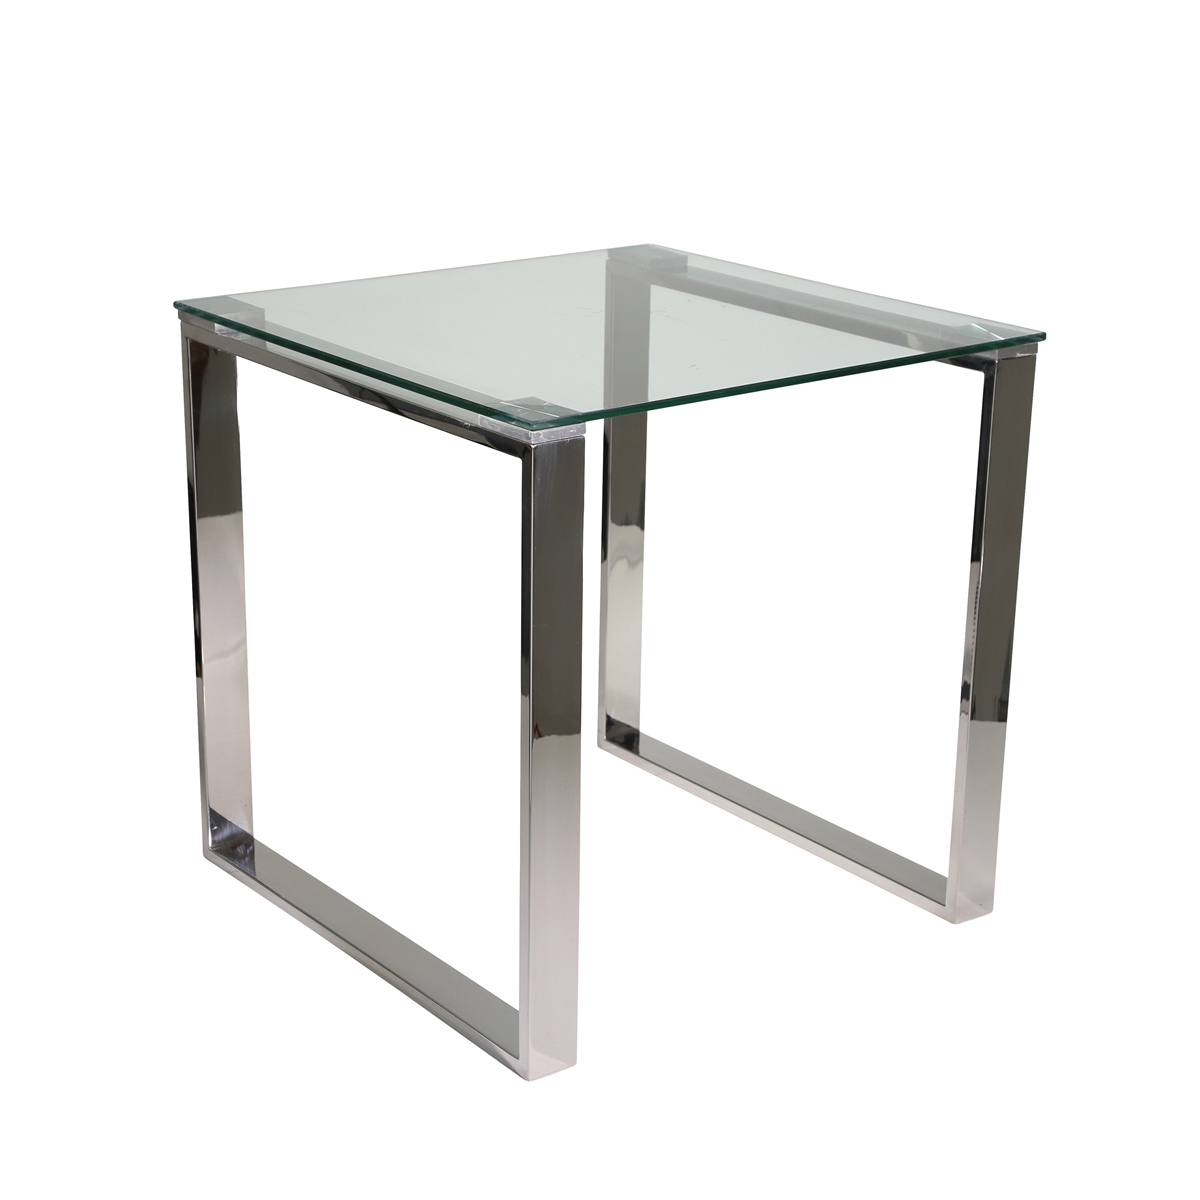 silver metal glass accent table sagebrook home log for pricing and availability material round coffee cover small cherry wood tall marble side ikea garden storage bench ashley